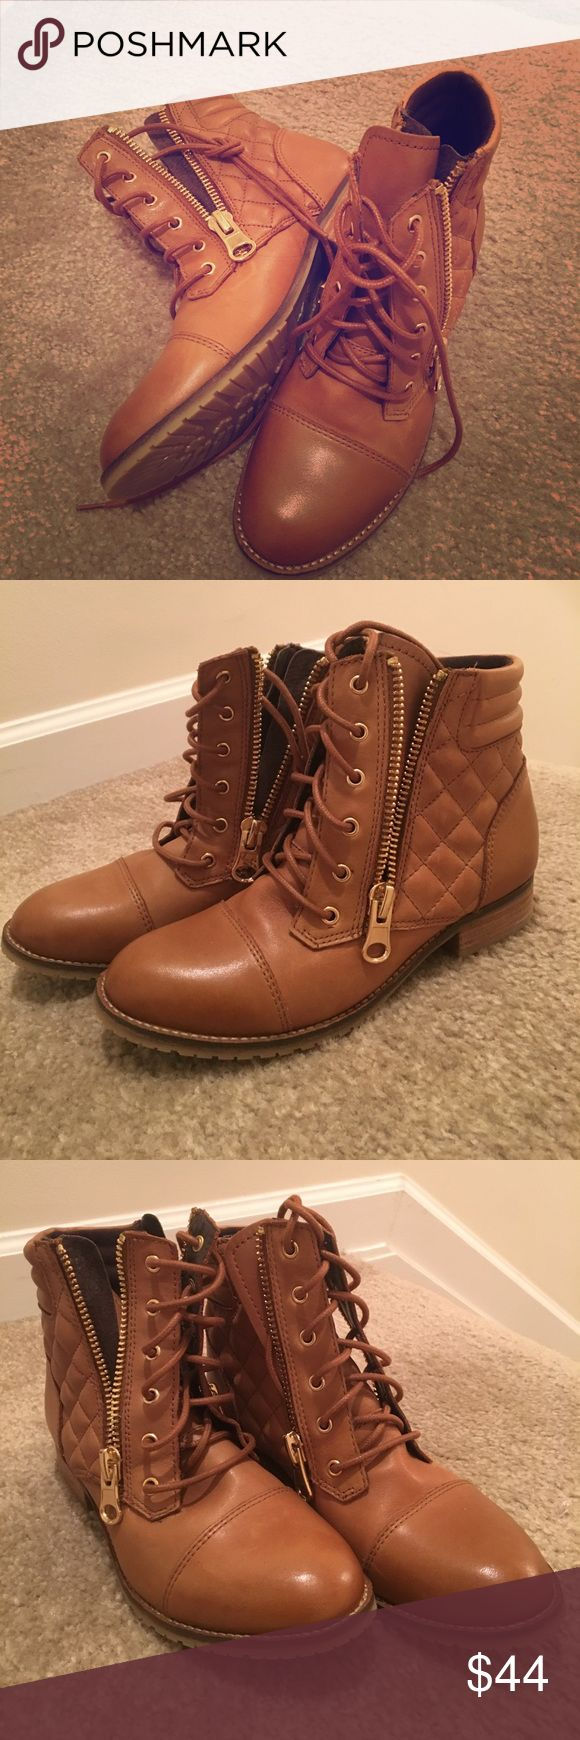 ++New brown leather ALDO boots++ These light brown lace up boots have a stylish quilted leather design and double gold zippers on each side. New, never worn! Aldo Shoes Lace Up Boots